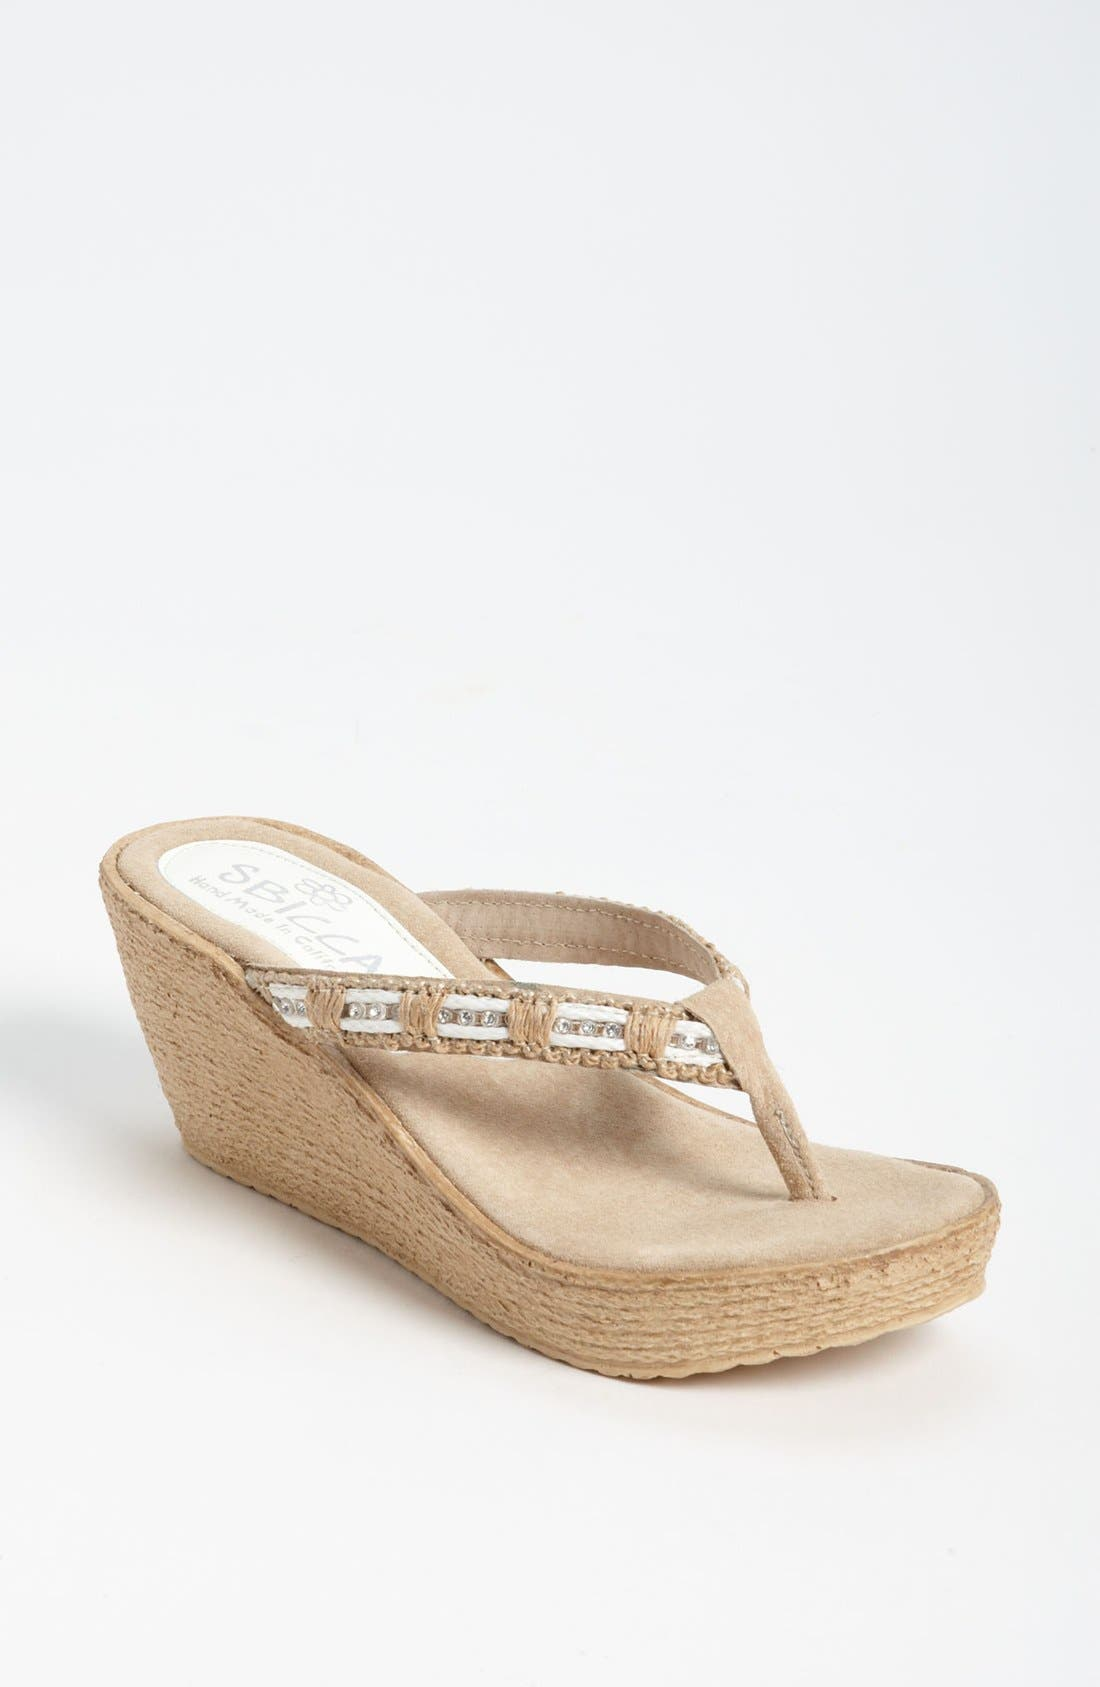 Main Image - Sbicca 'Cora' Wedge Sandal